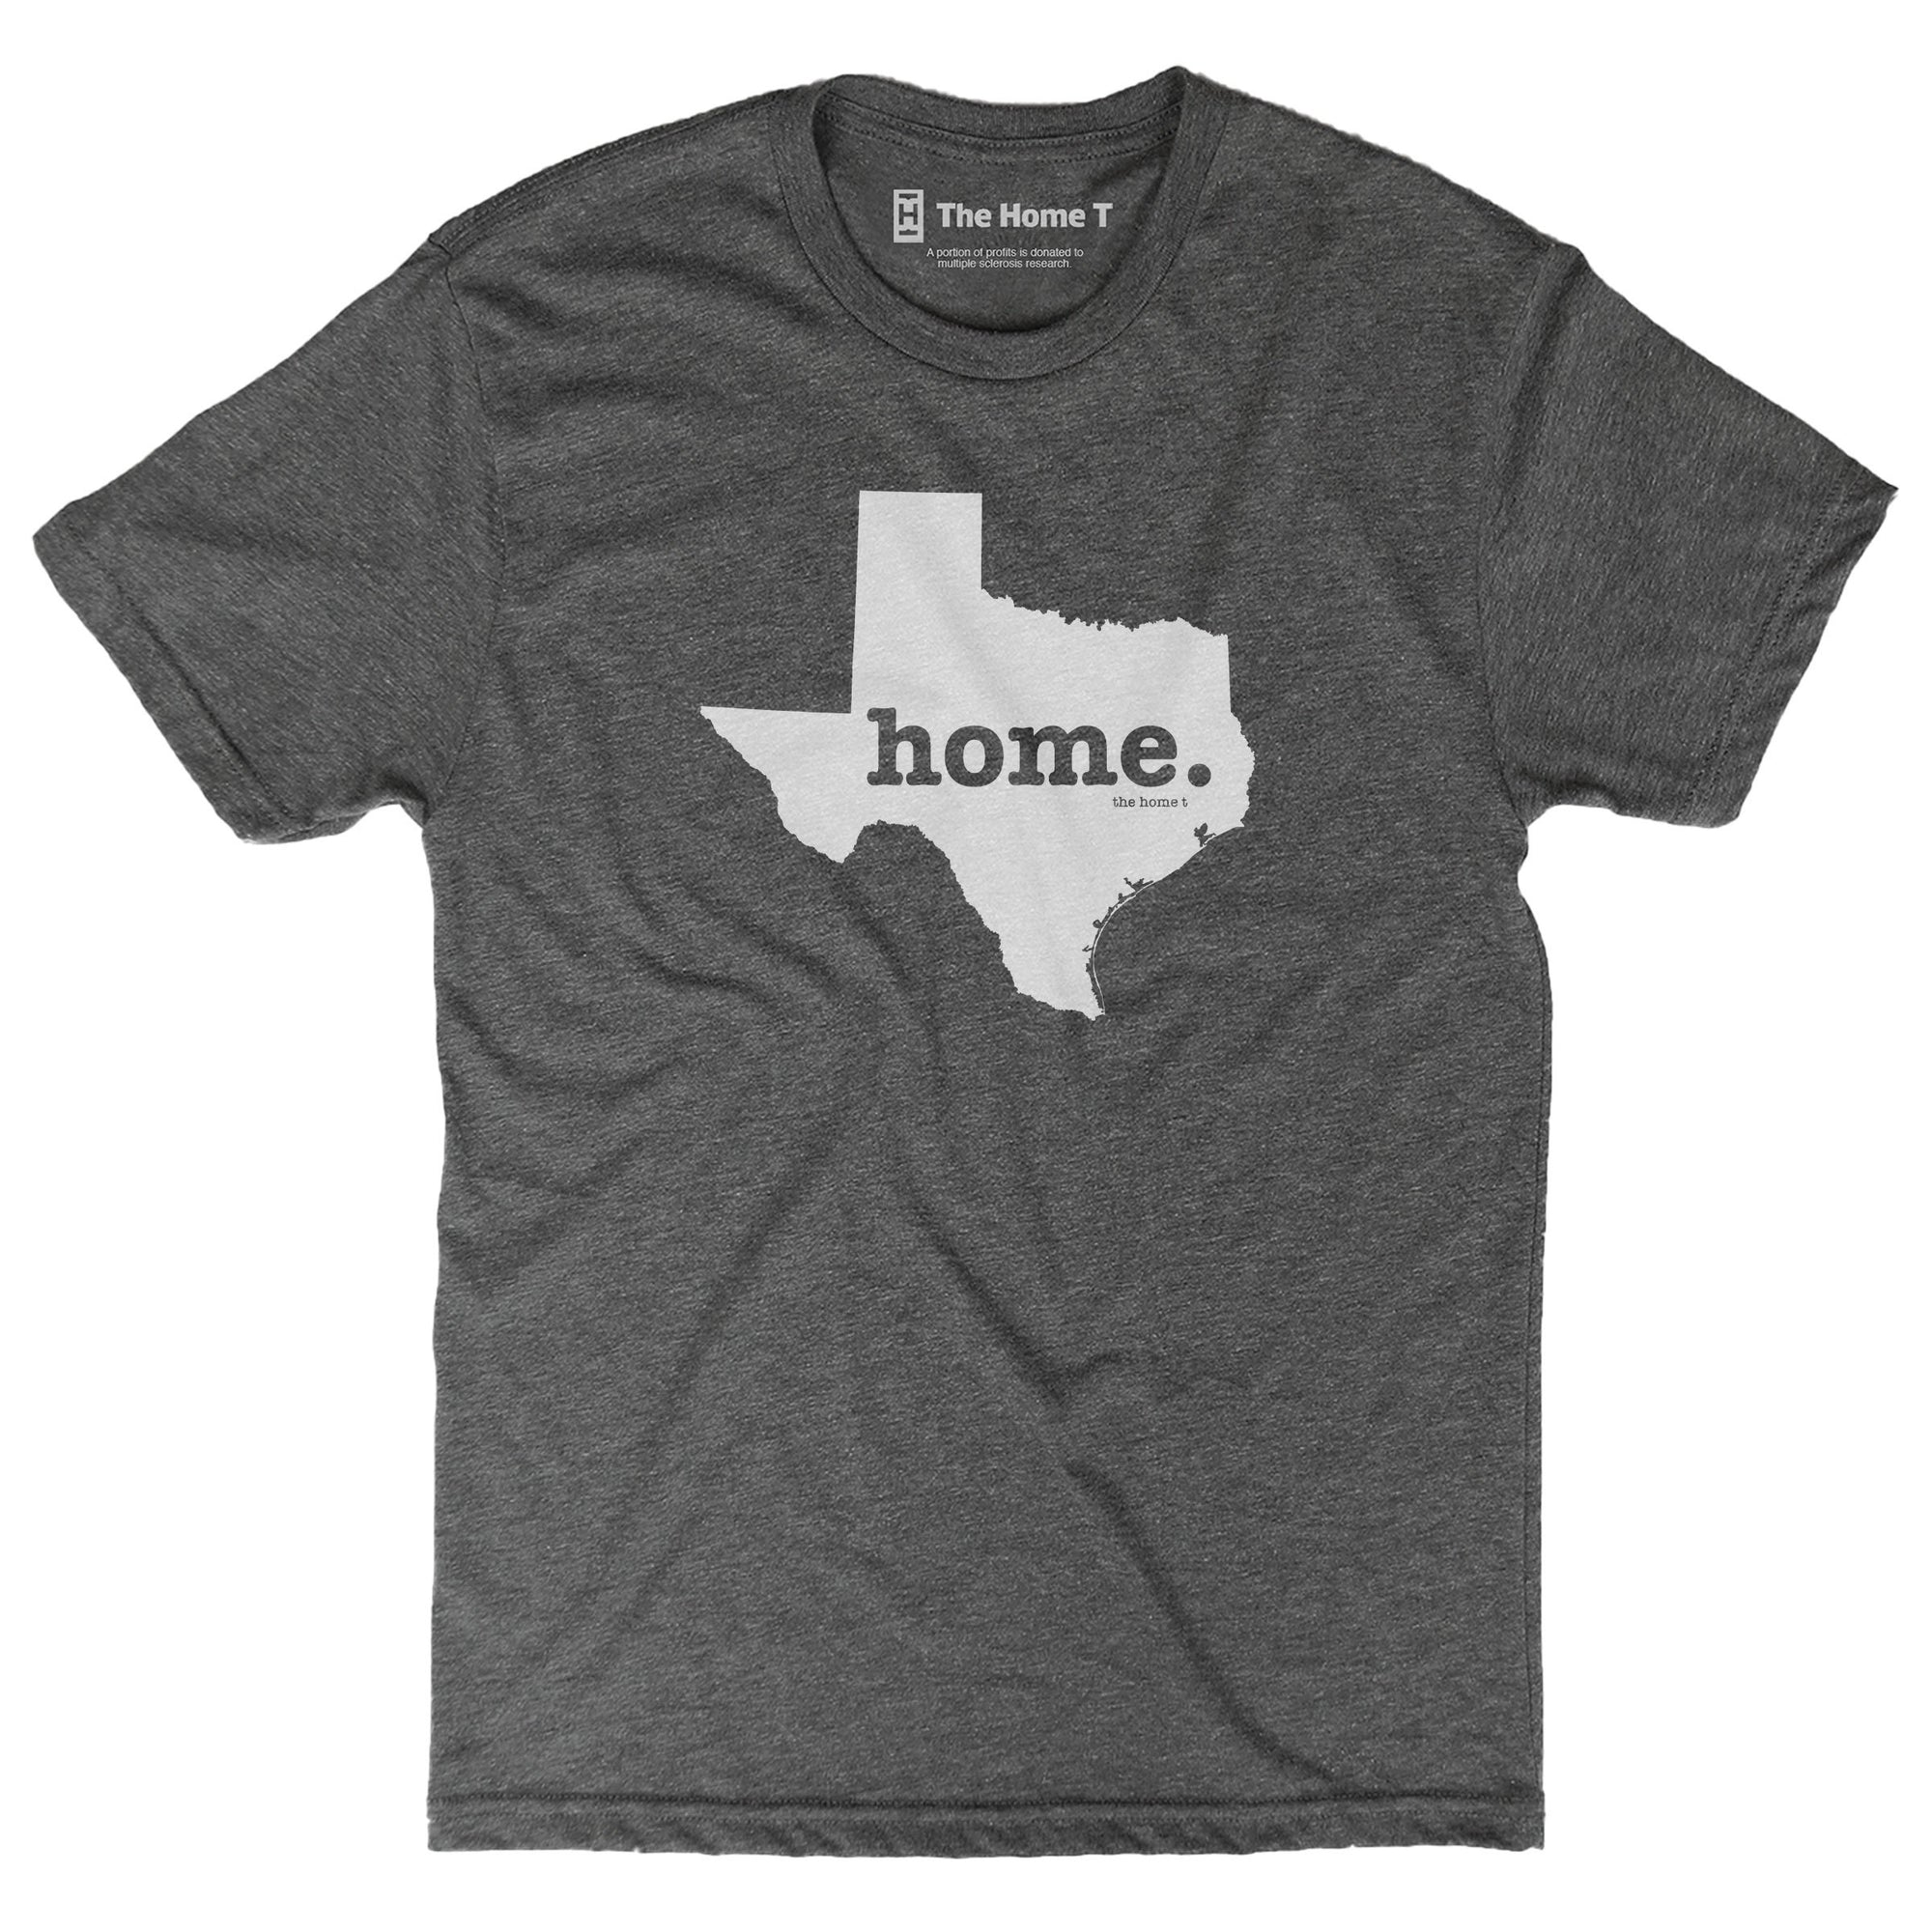 Texas Home T-shirt Original Crew The Home T XS Dark Grey